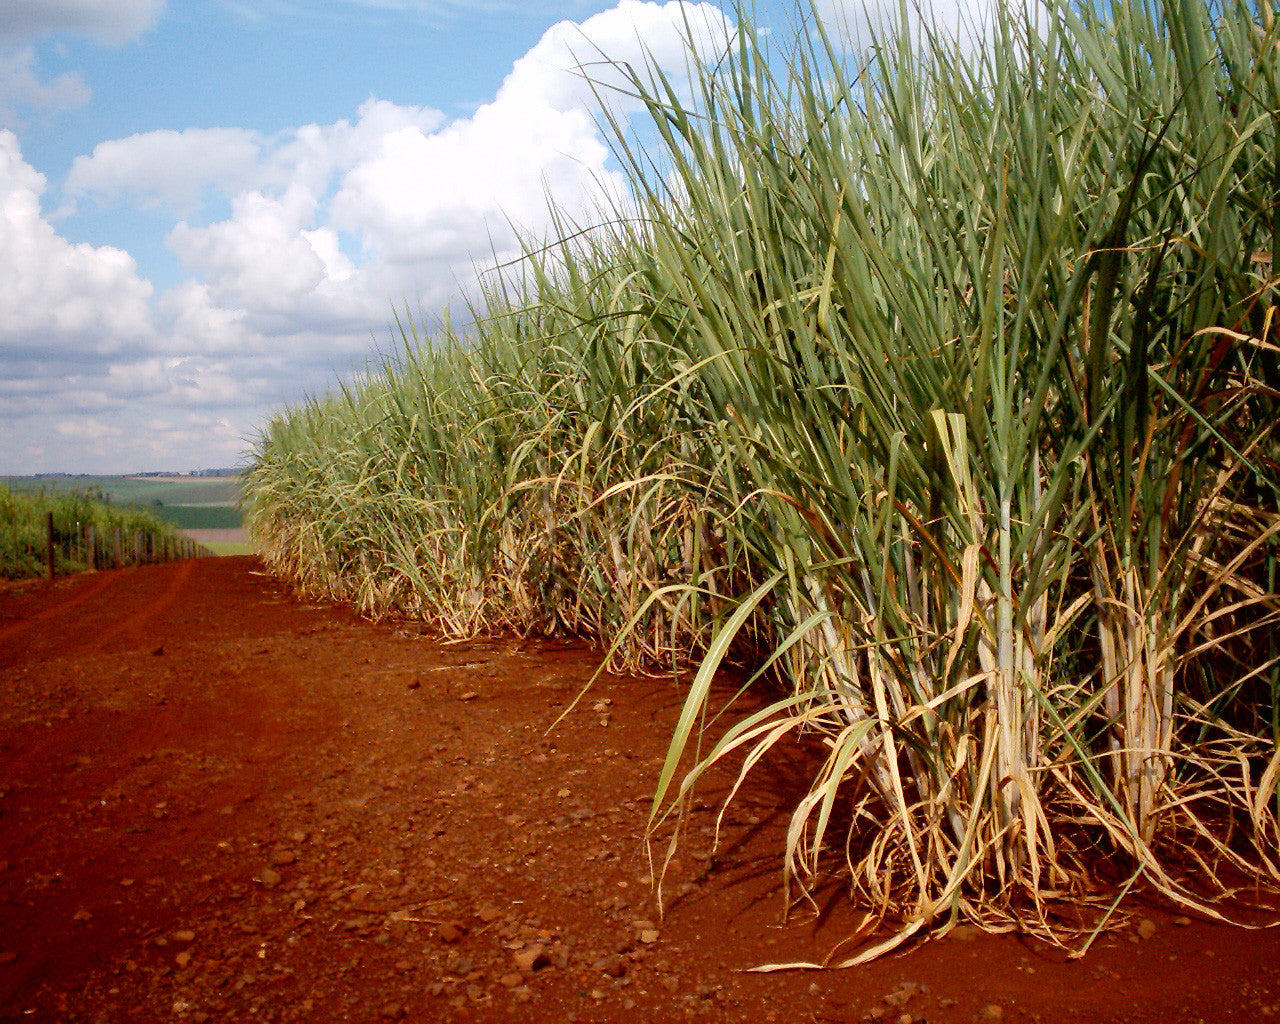 Sugarcane used to make rum